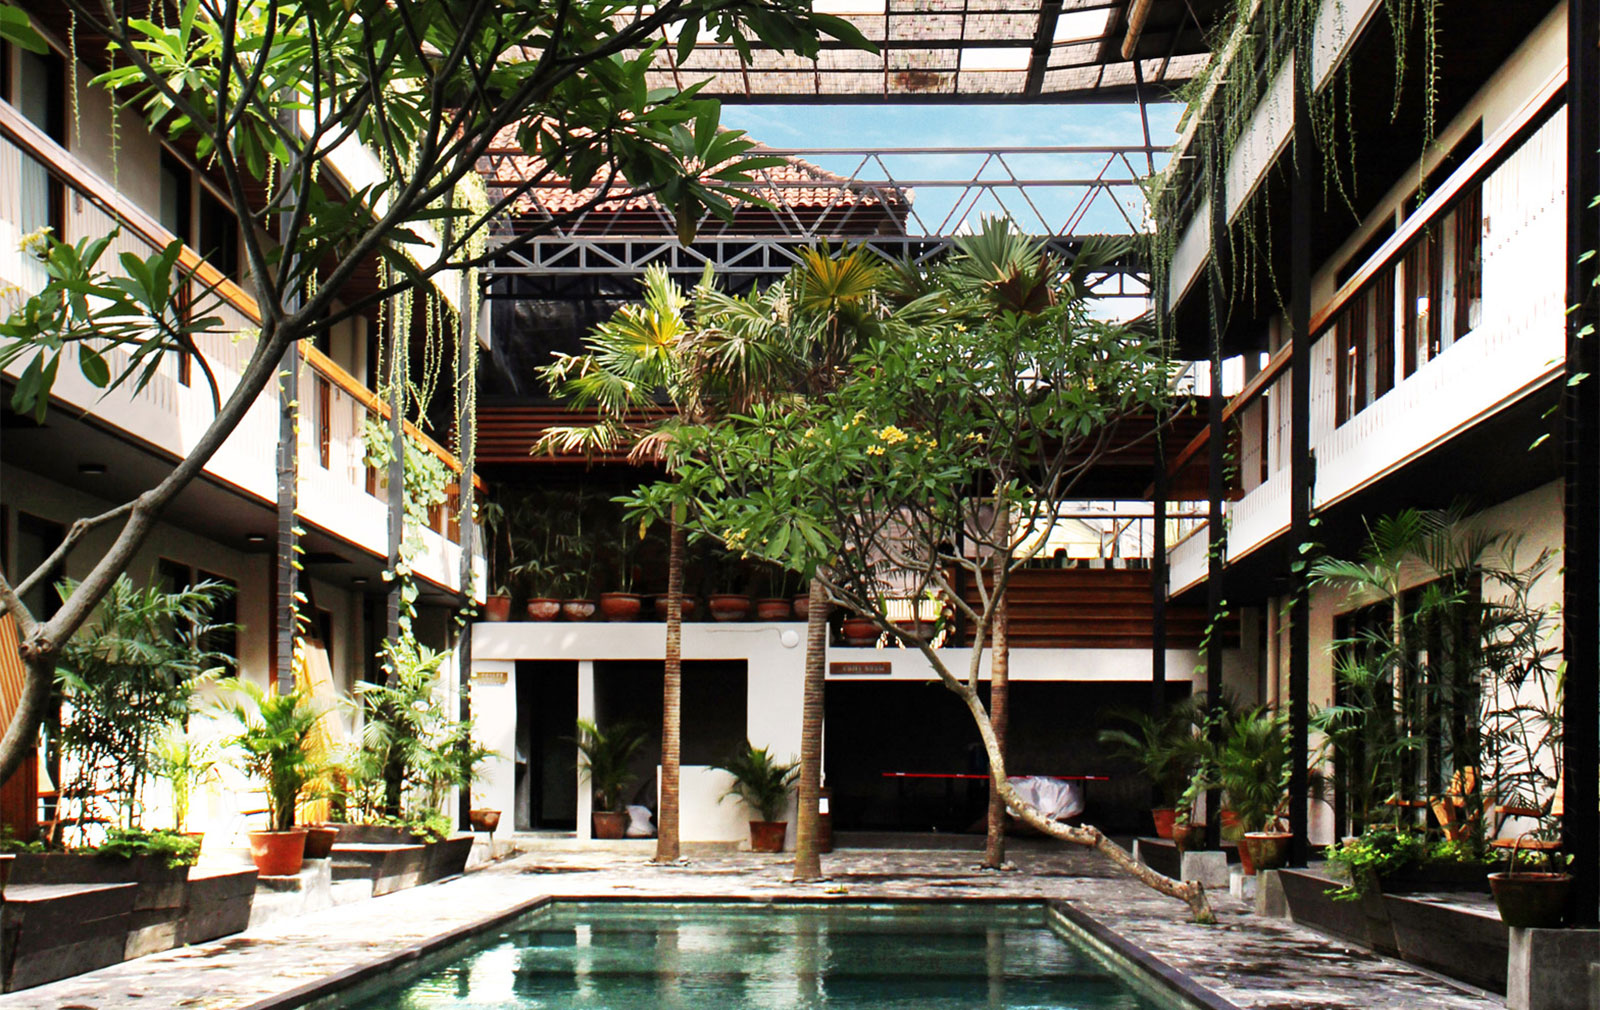 Coworking spaces in far flung locations, including Bali